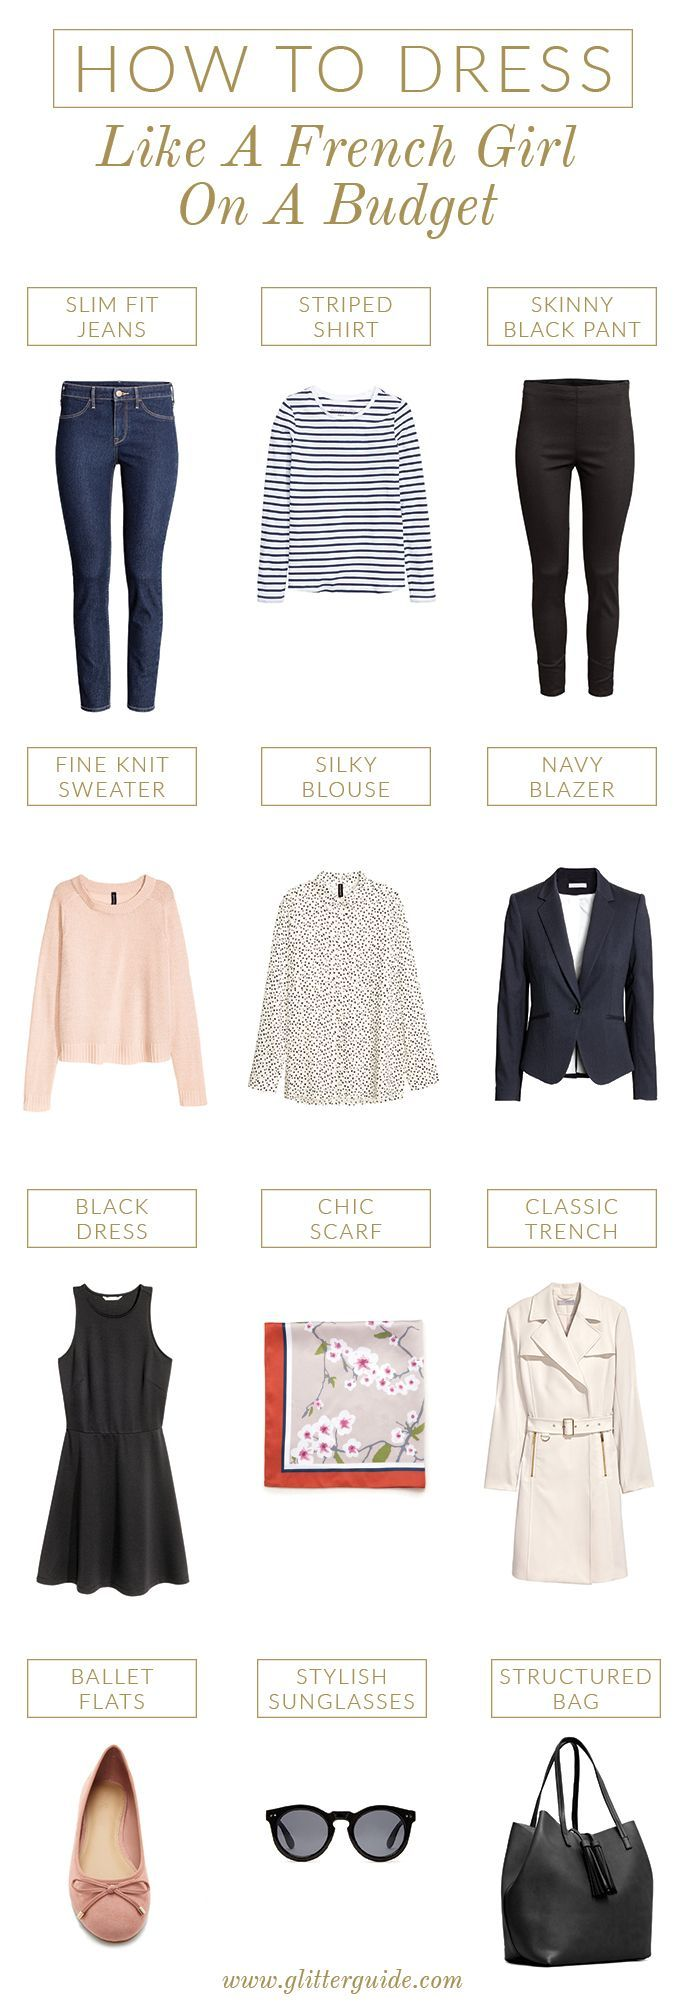 Achieve that chic, effortless style                                                                                                                                                                                 More